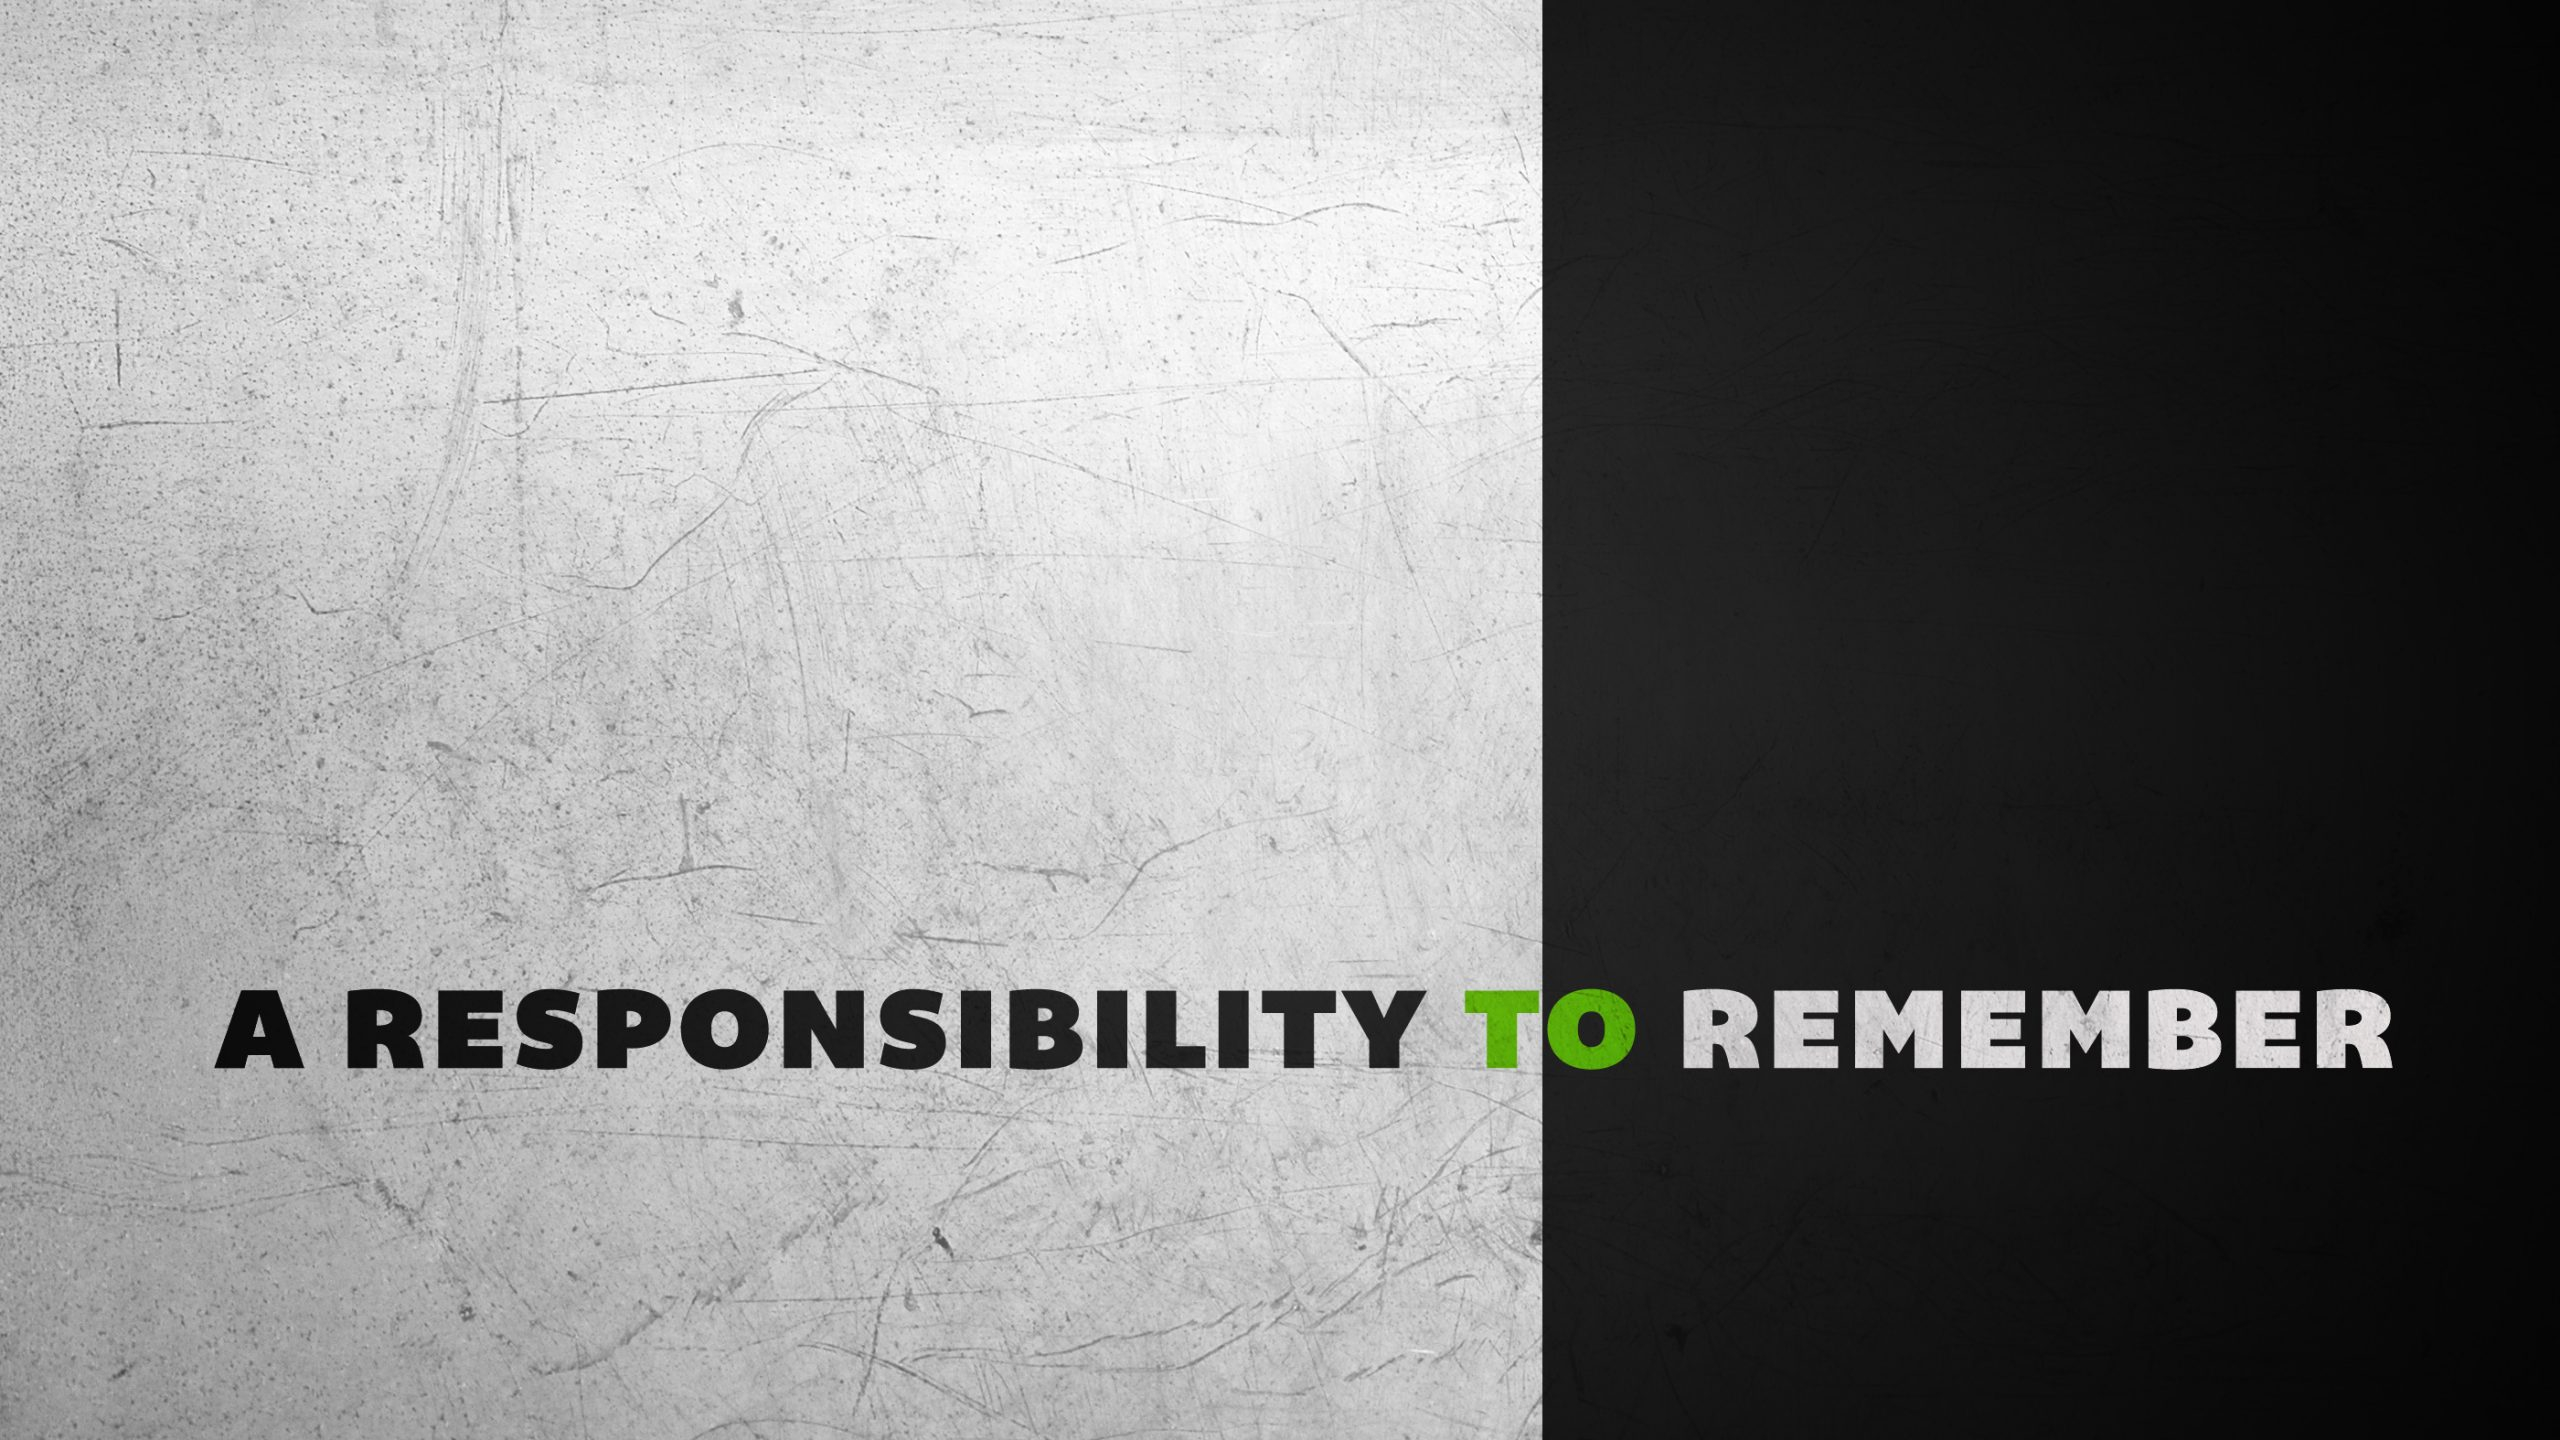 A Responsibility To Remember